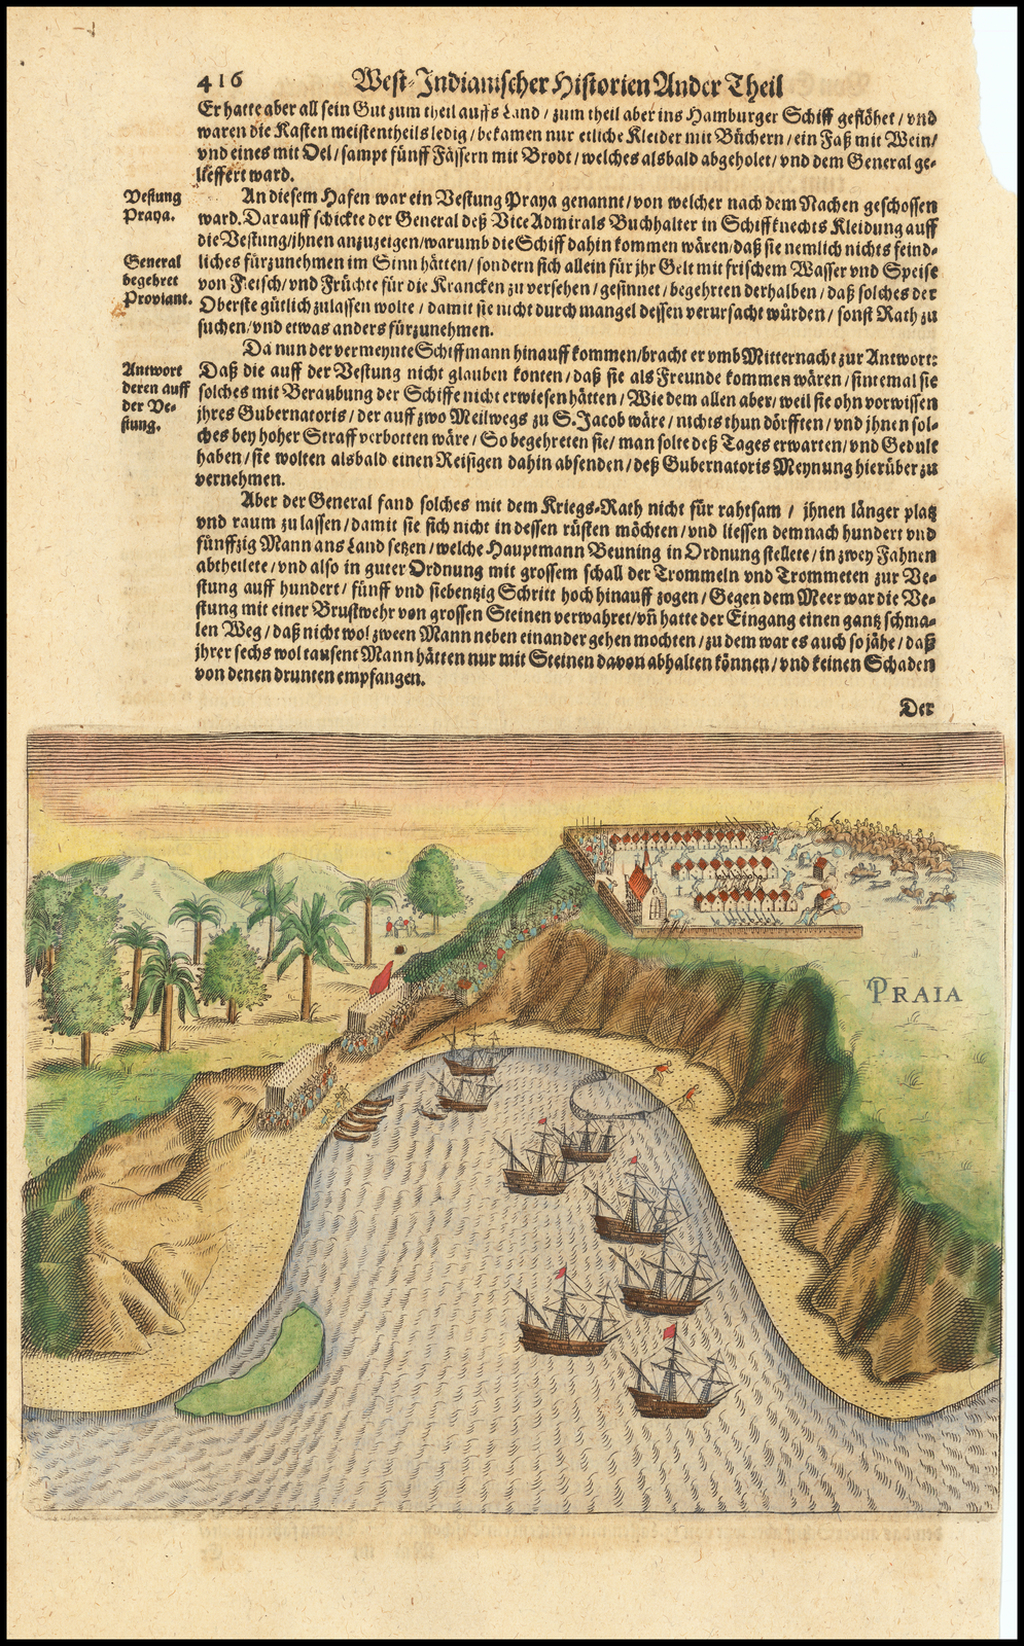 [Dutch attack the fortress of Praia, Cape Verde Islands] By Theodor De Bry / Matthaus Merian